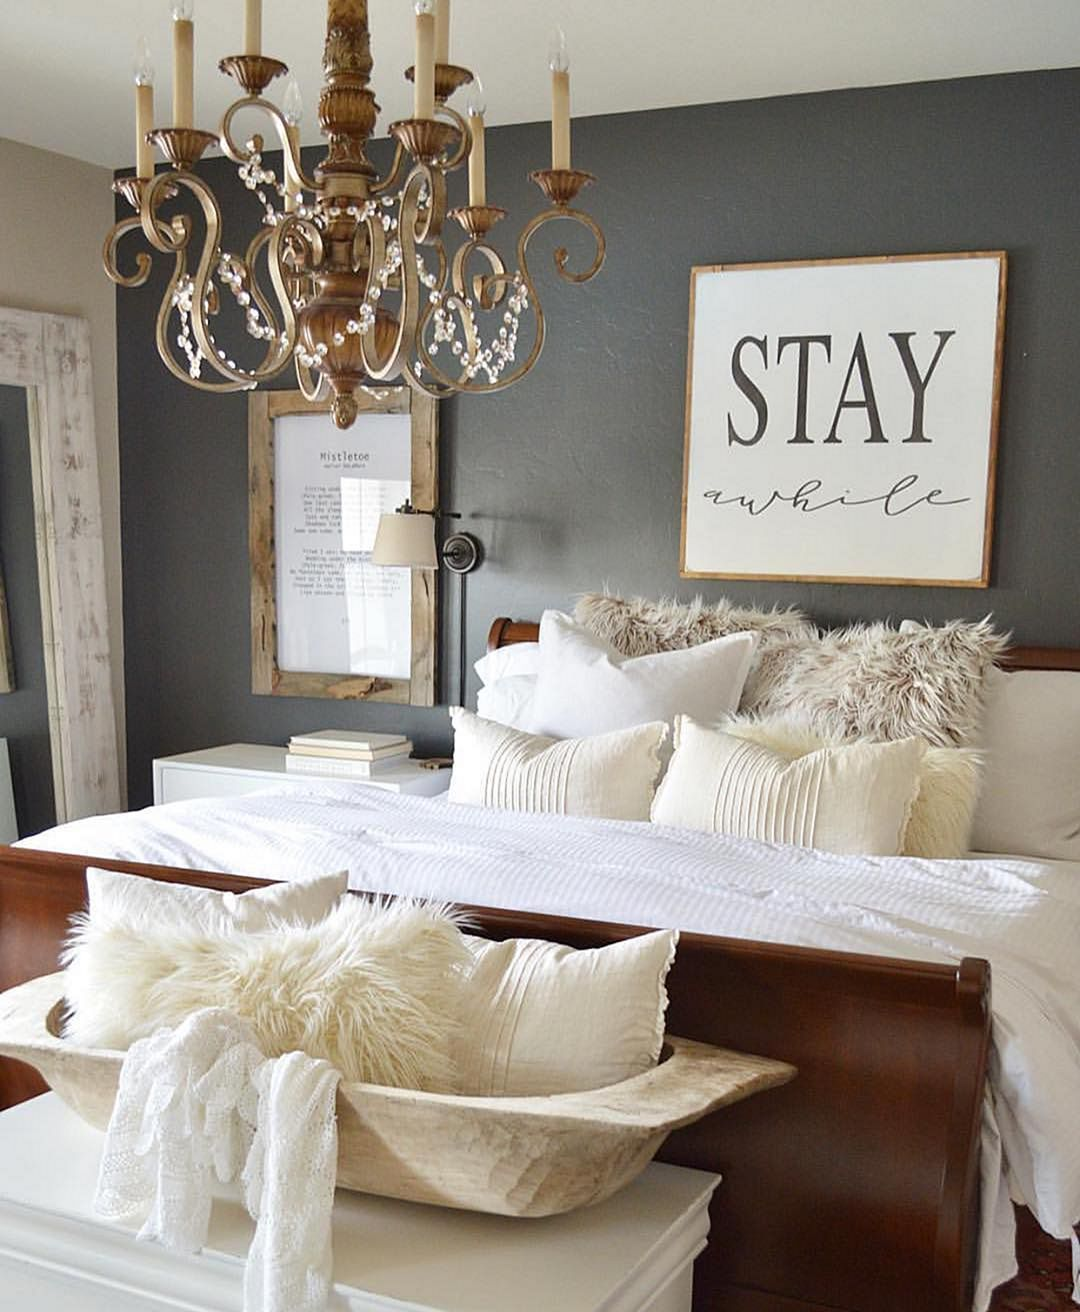 Guest Bedroom Decor Ideas Mesmerizing The Best 57 Cozy Farmhouse Guest Bedroom Design Ideas To Make Decorating Inspiration